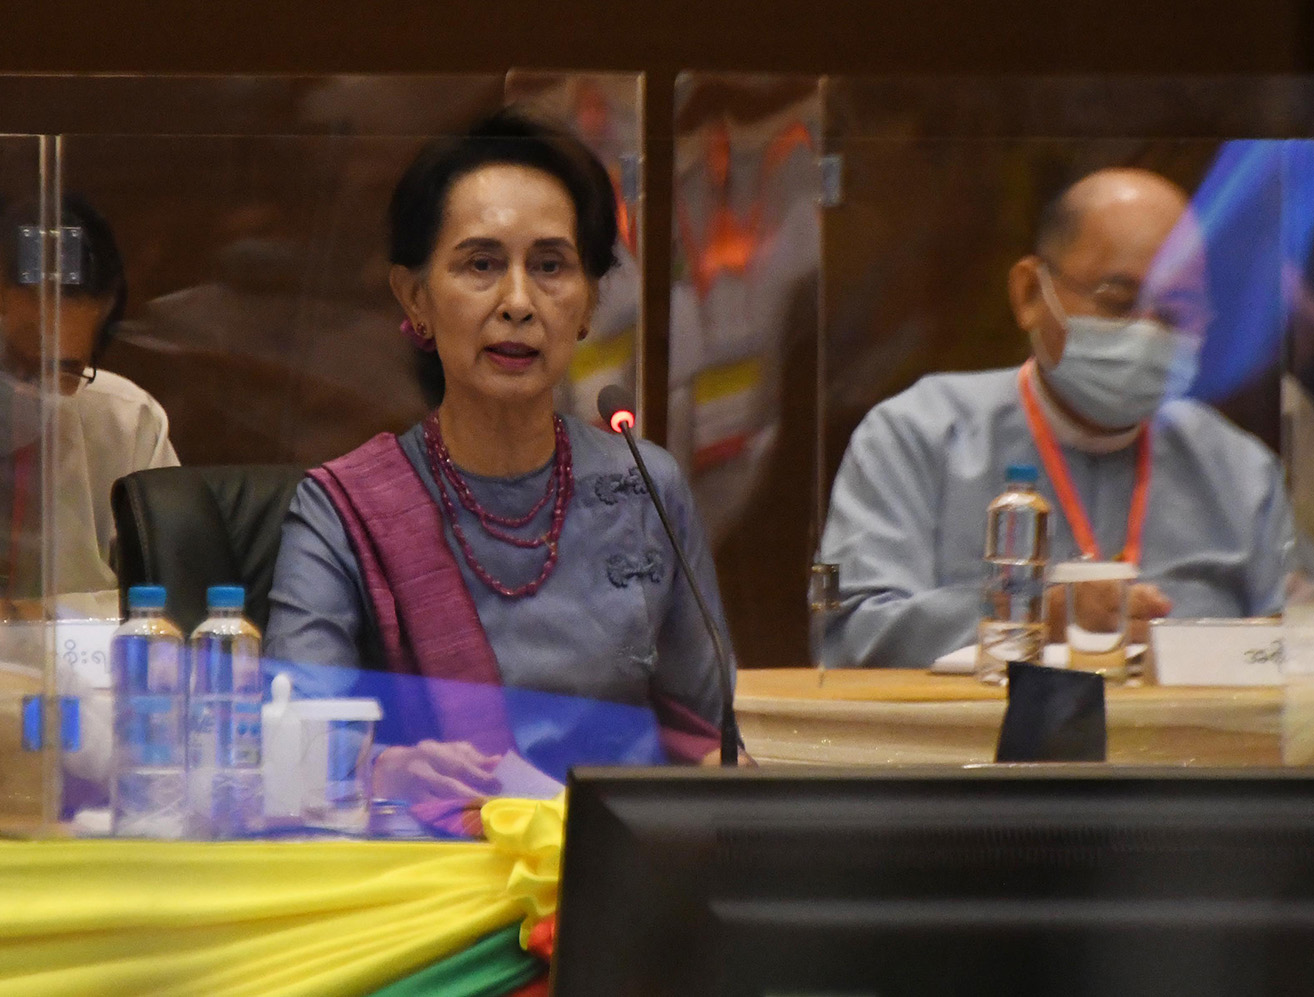 State Counsellor Daw Aung San Suu Kyi makes the opening remark at the 20th meeting of UPDJC in Nay Pyi Taw on 20 August.PHOTO: MNA